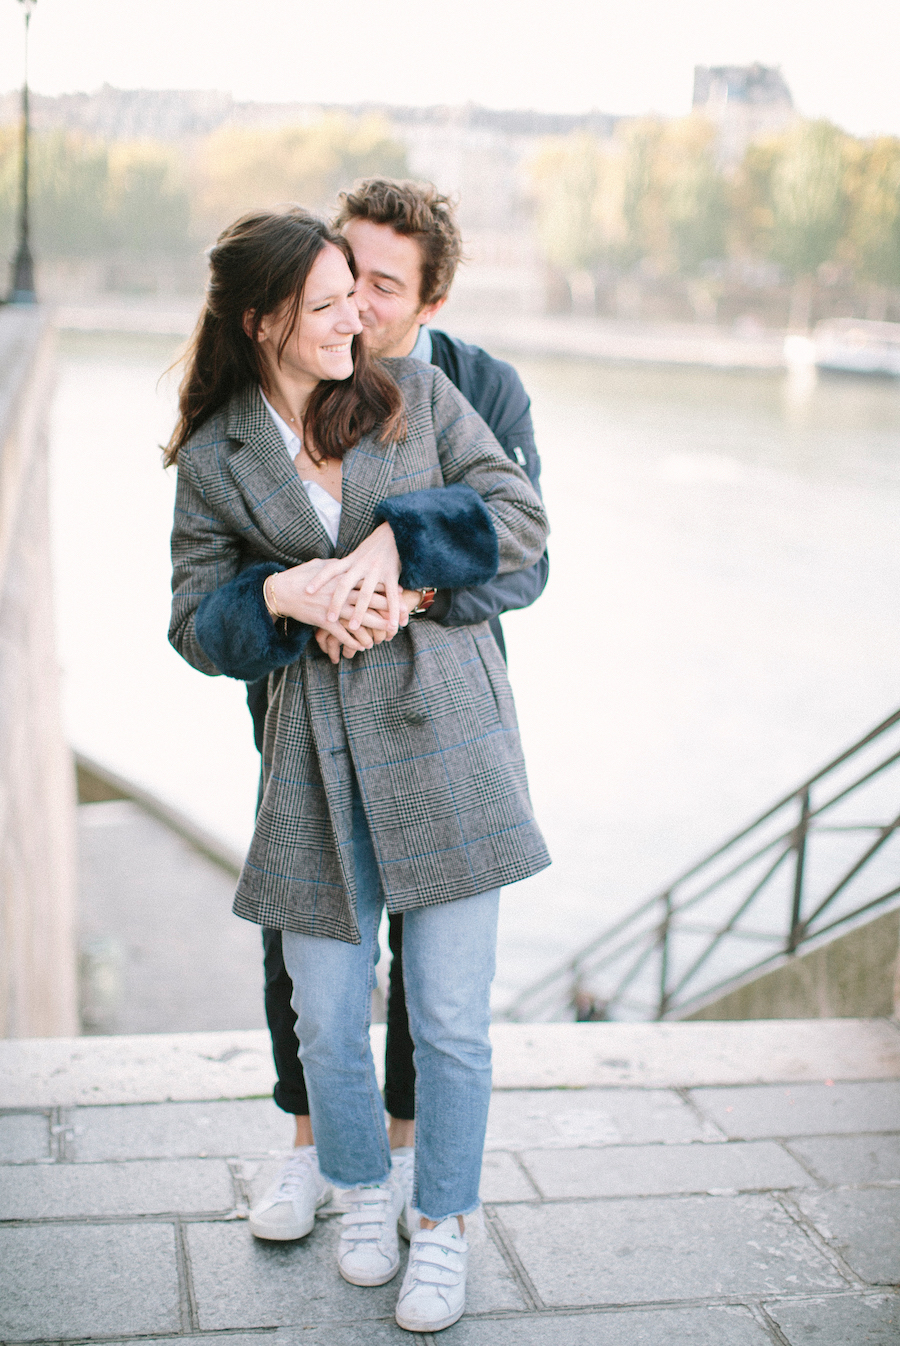 saya-photography-pre-wedding-couple-engagement-paris-ile-saint-louis-29.jpg